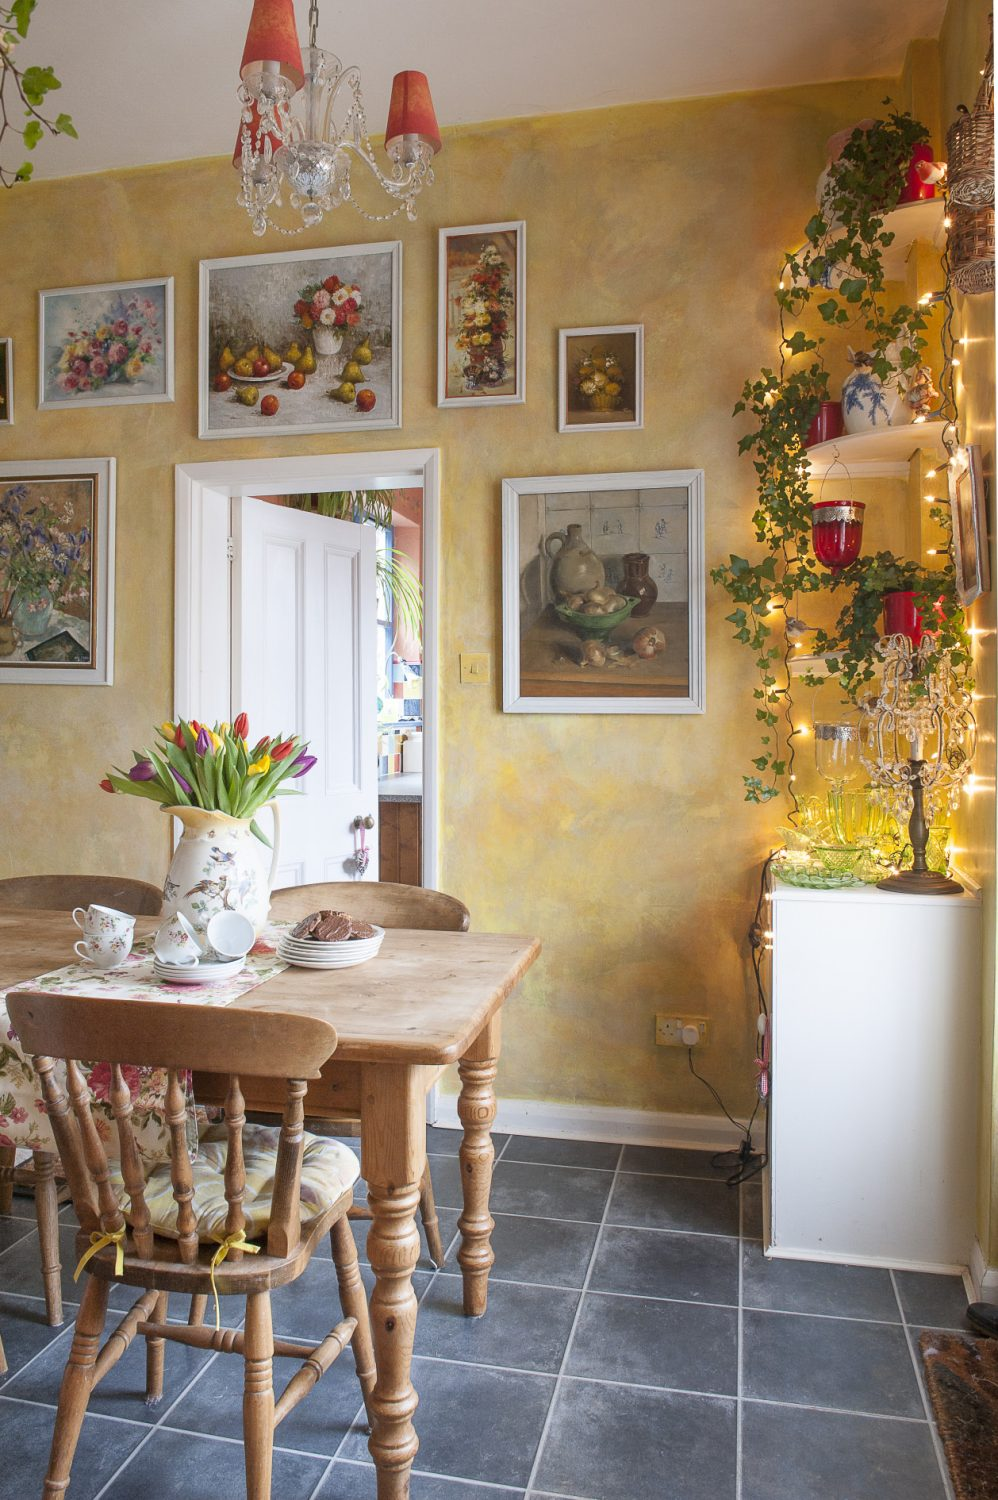 The yellow breakfast room is covered in still life pictures and cascades of ivy